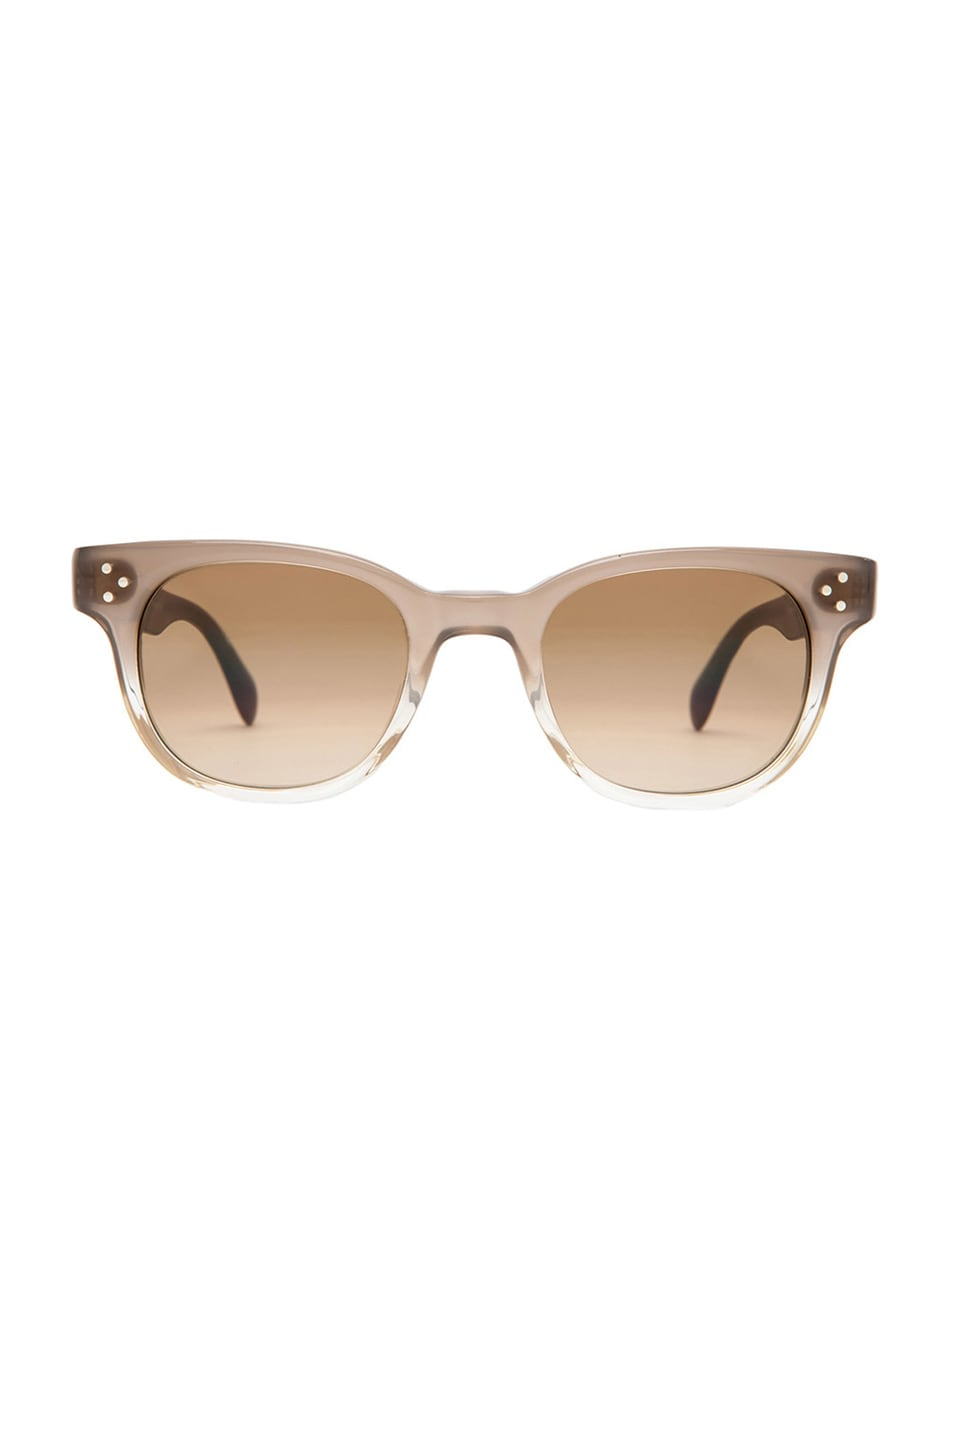 Image 1 of Oliver Peoples Afton Photochromic Sunglasses in Taupe Gradient